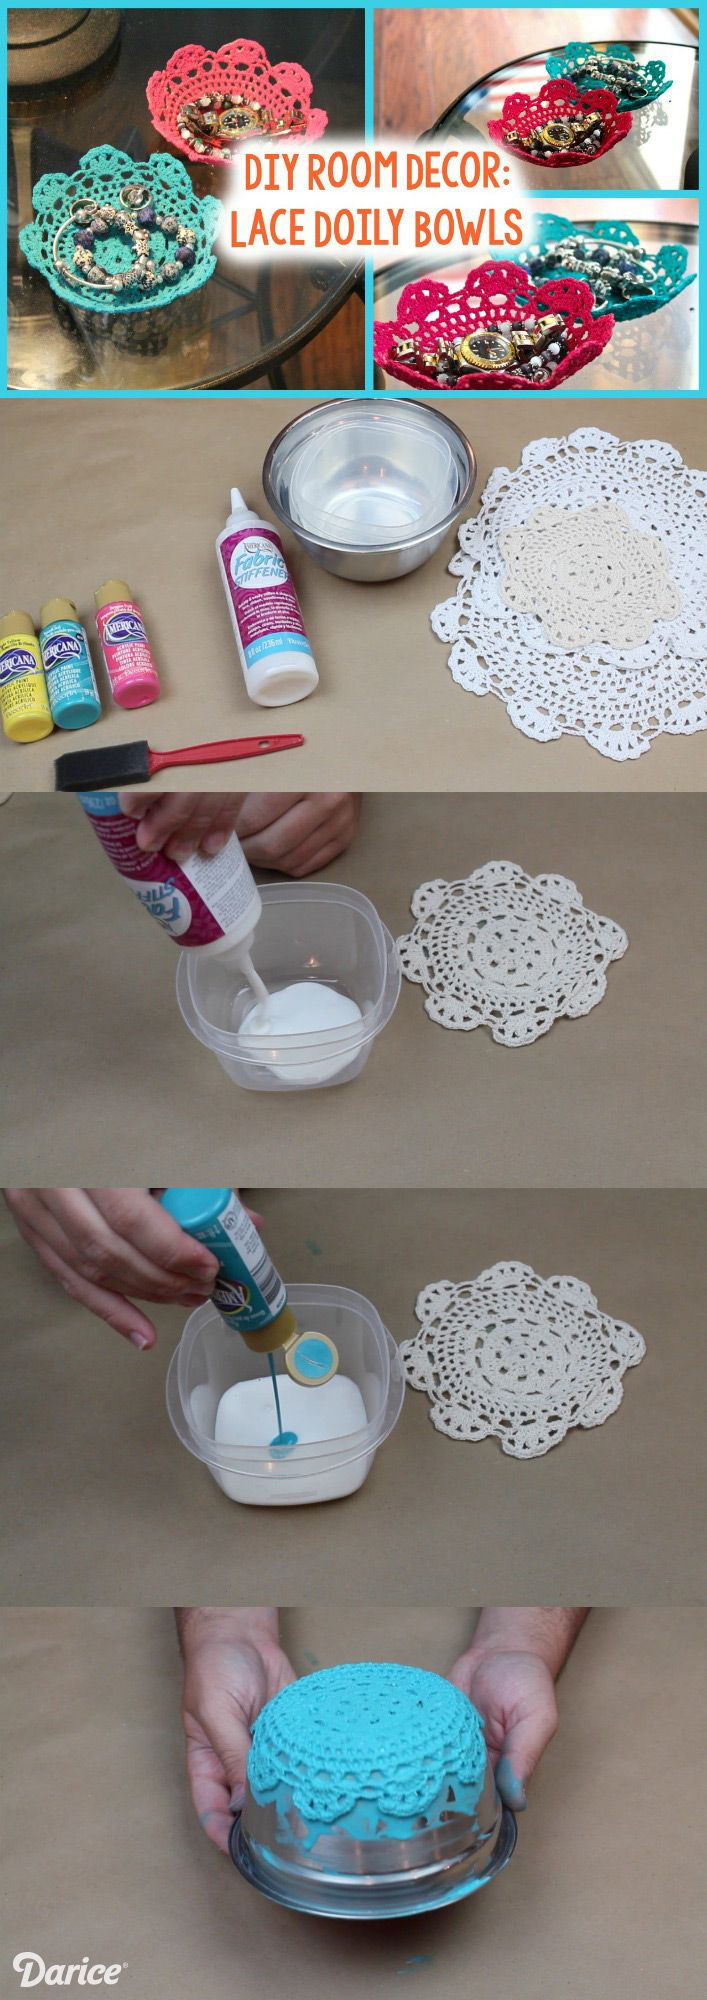 This DIY Lace Doily Bowls tutorial is really simple and a lot of fun to create.